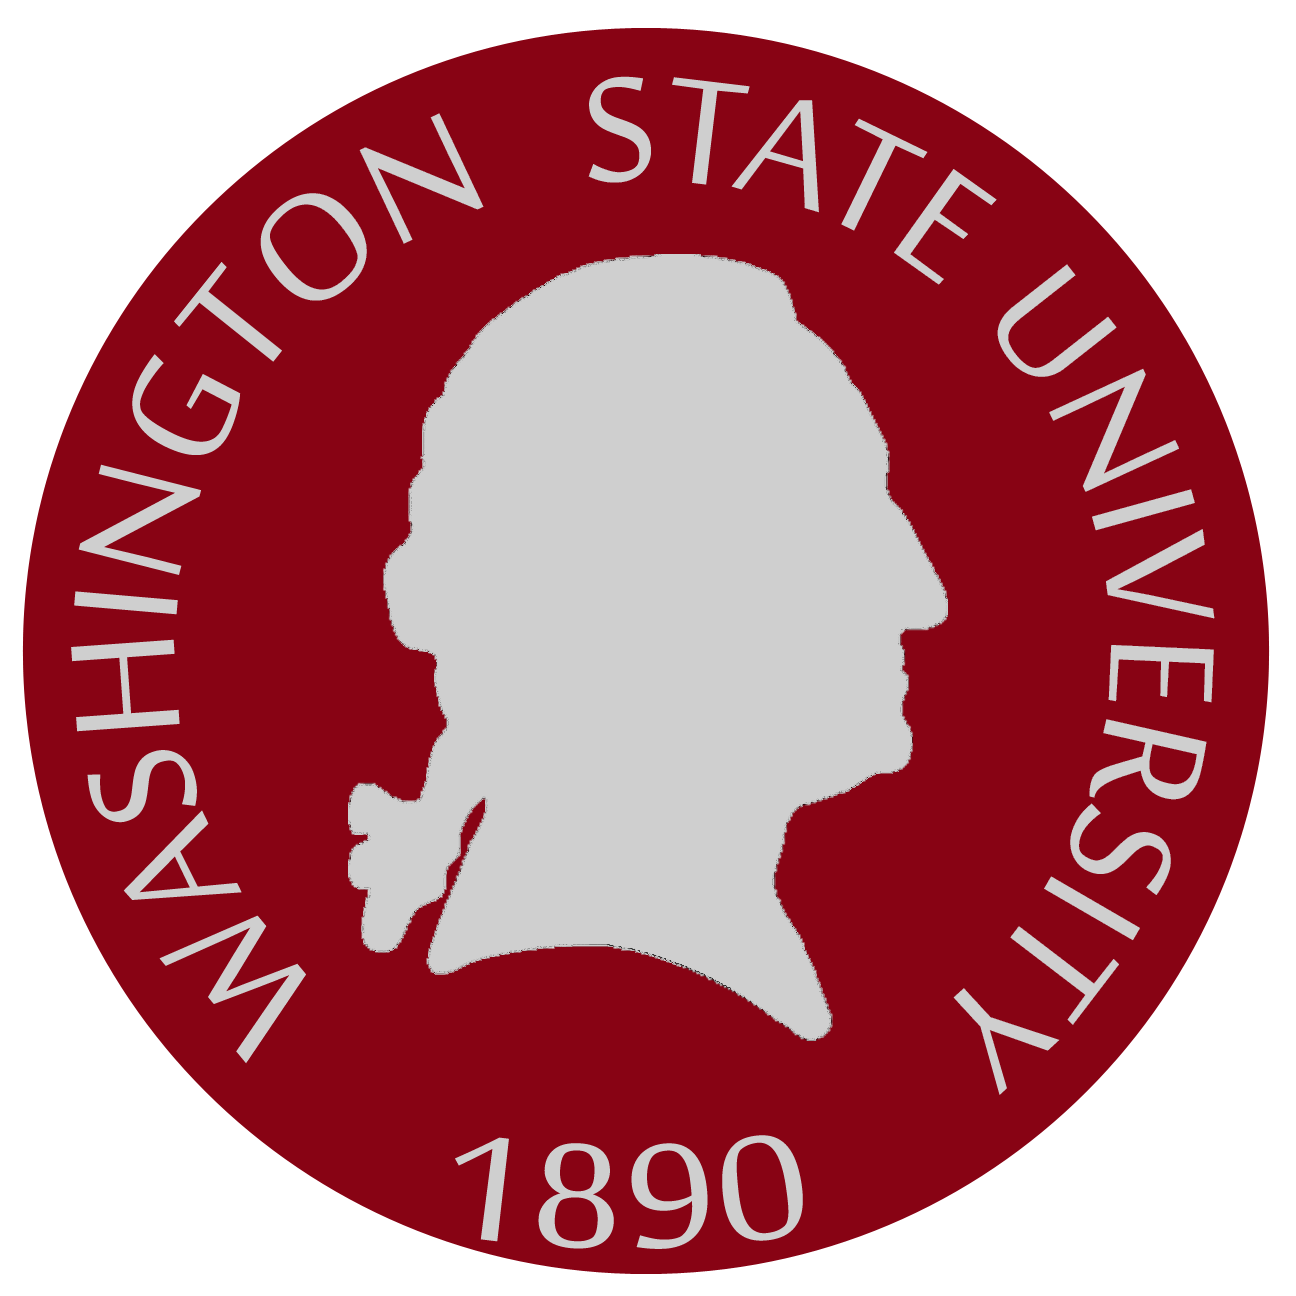 Washington State Native Plants: Online Classes,Online Colleges,: University In USA